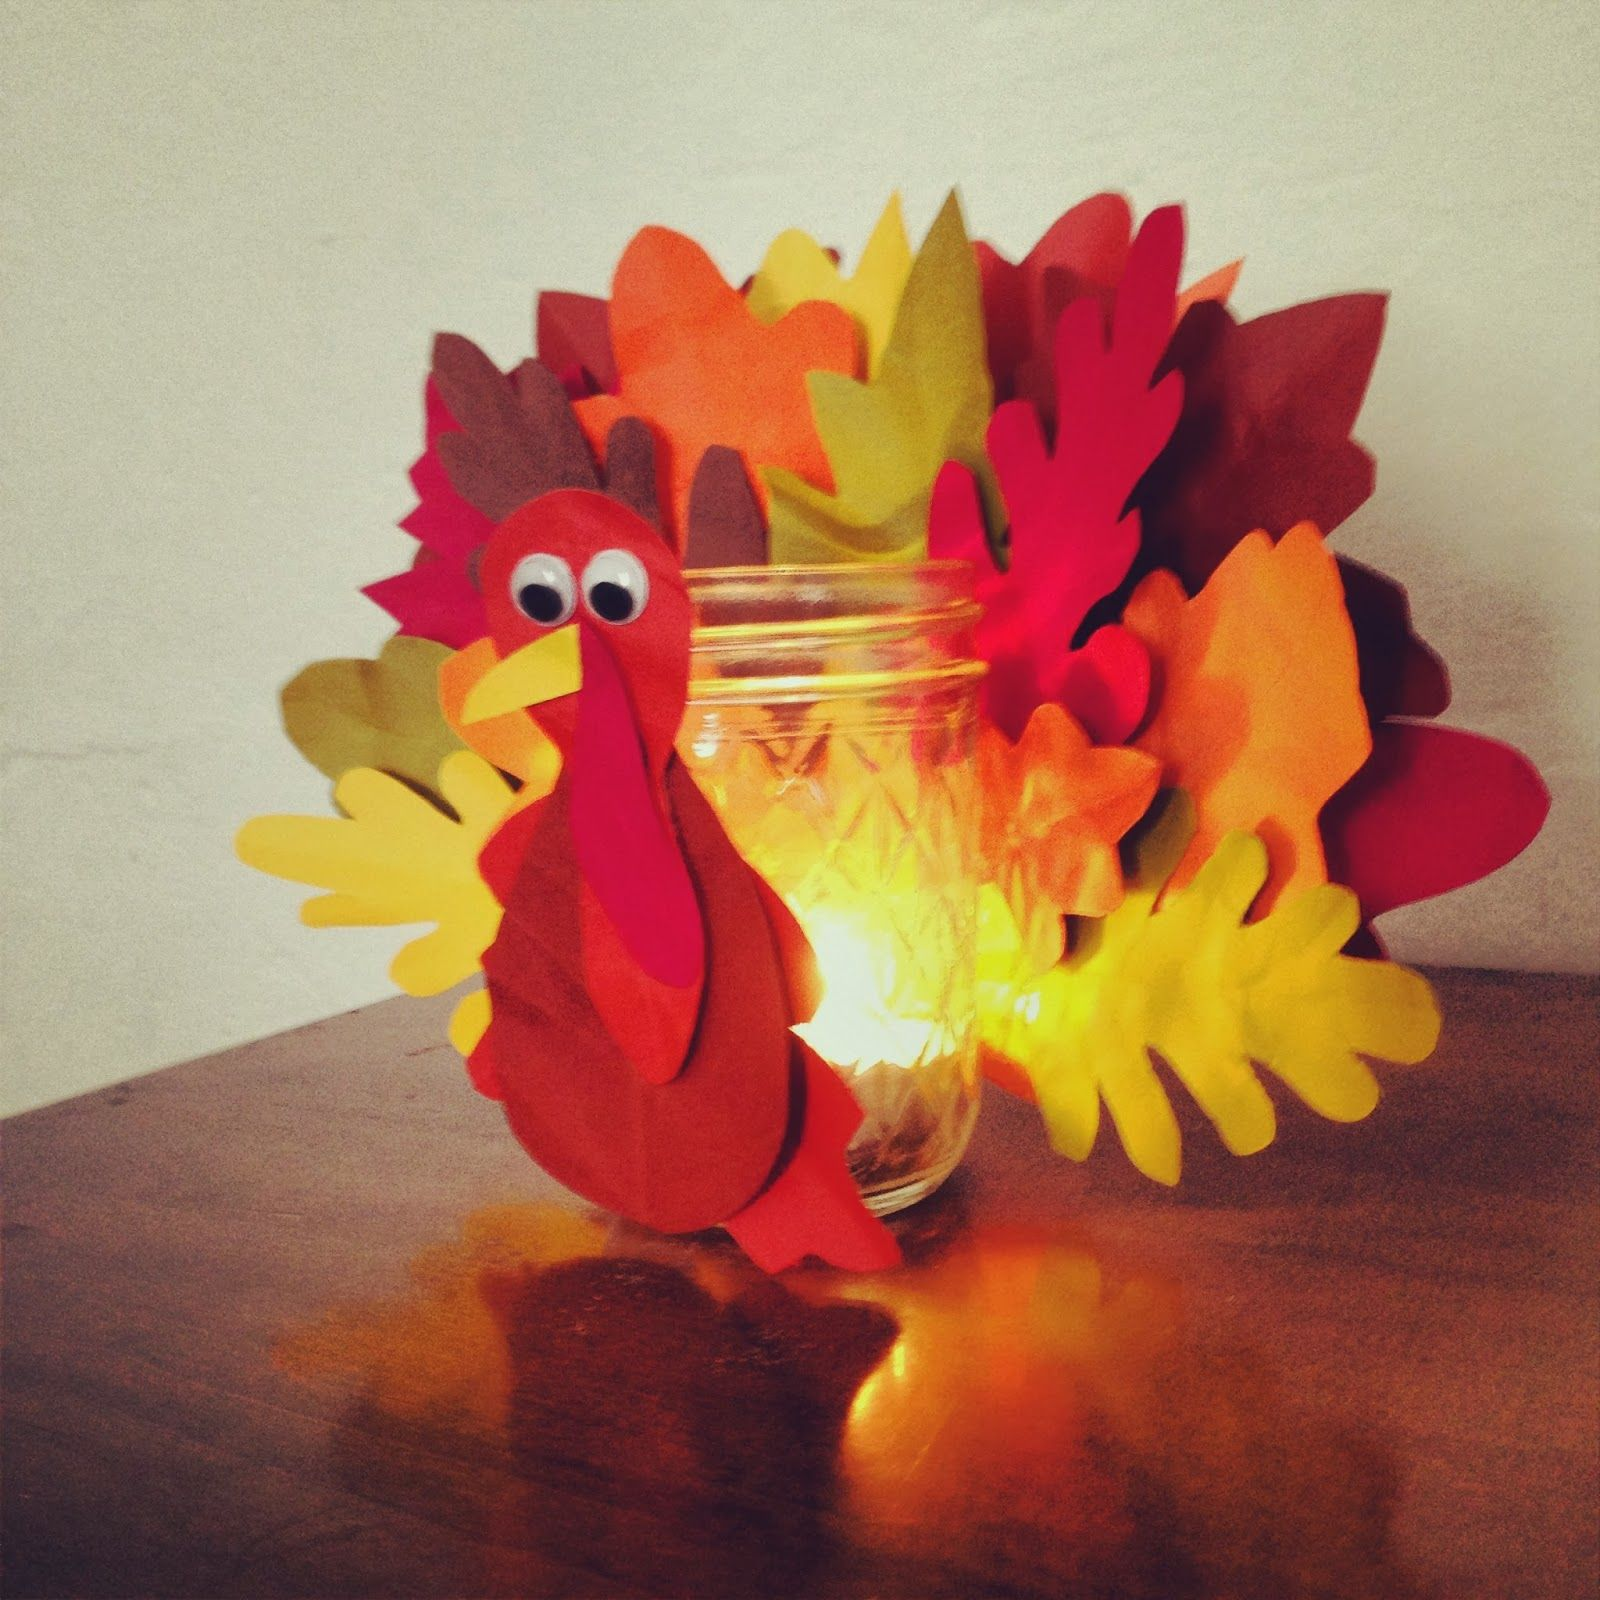 DIY turkey jar craft with paper leaves for